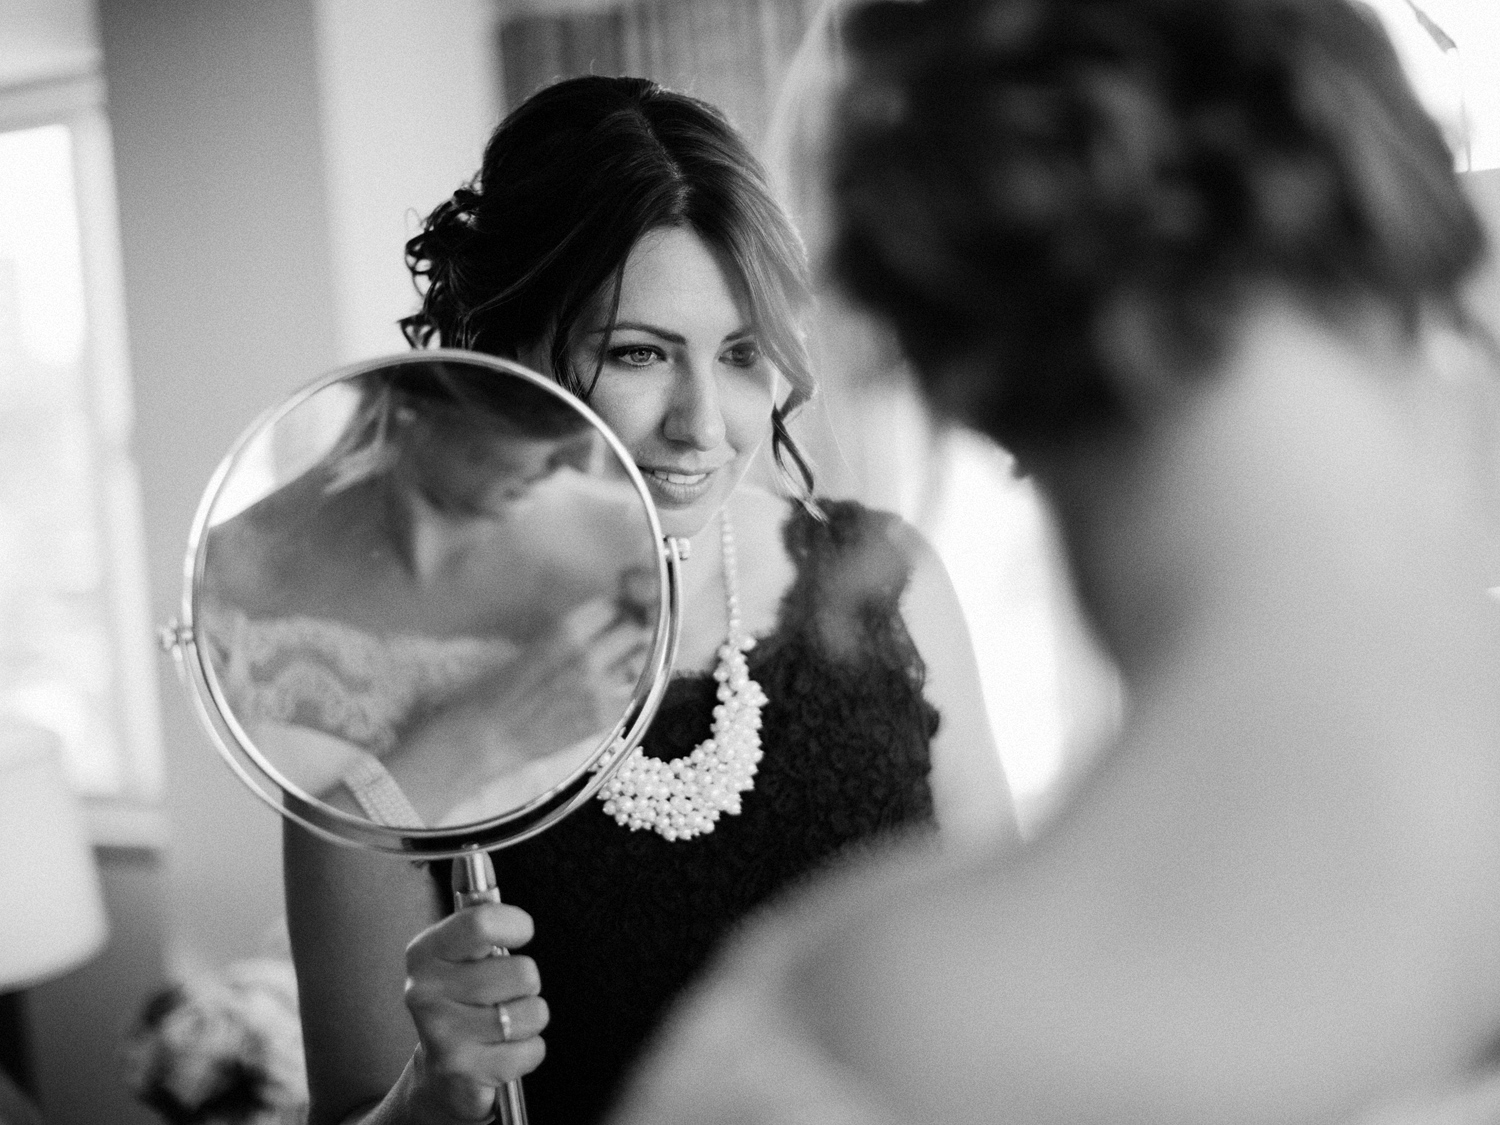 ryan-flynn-photography-best-wedding-photos-2014-0041.JPG